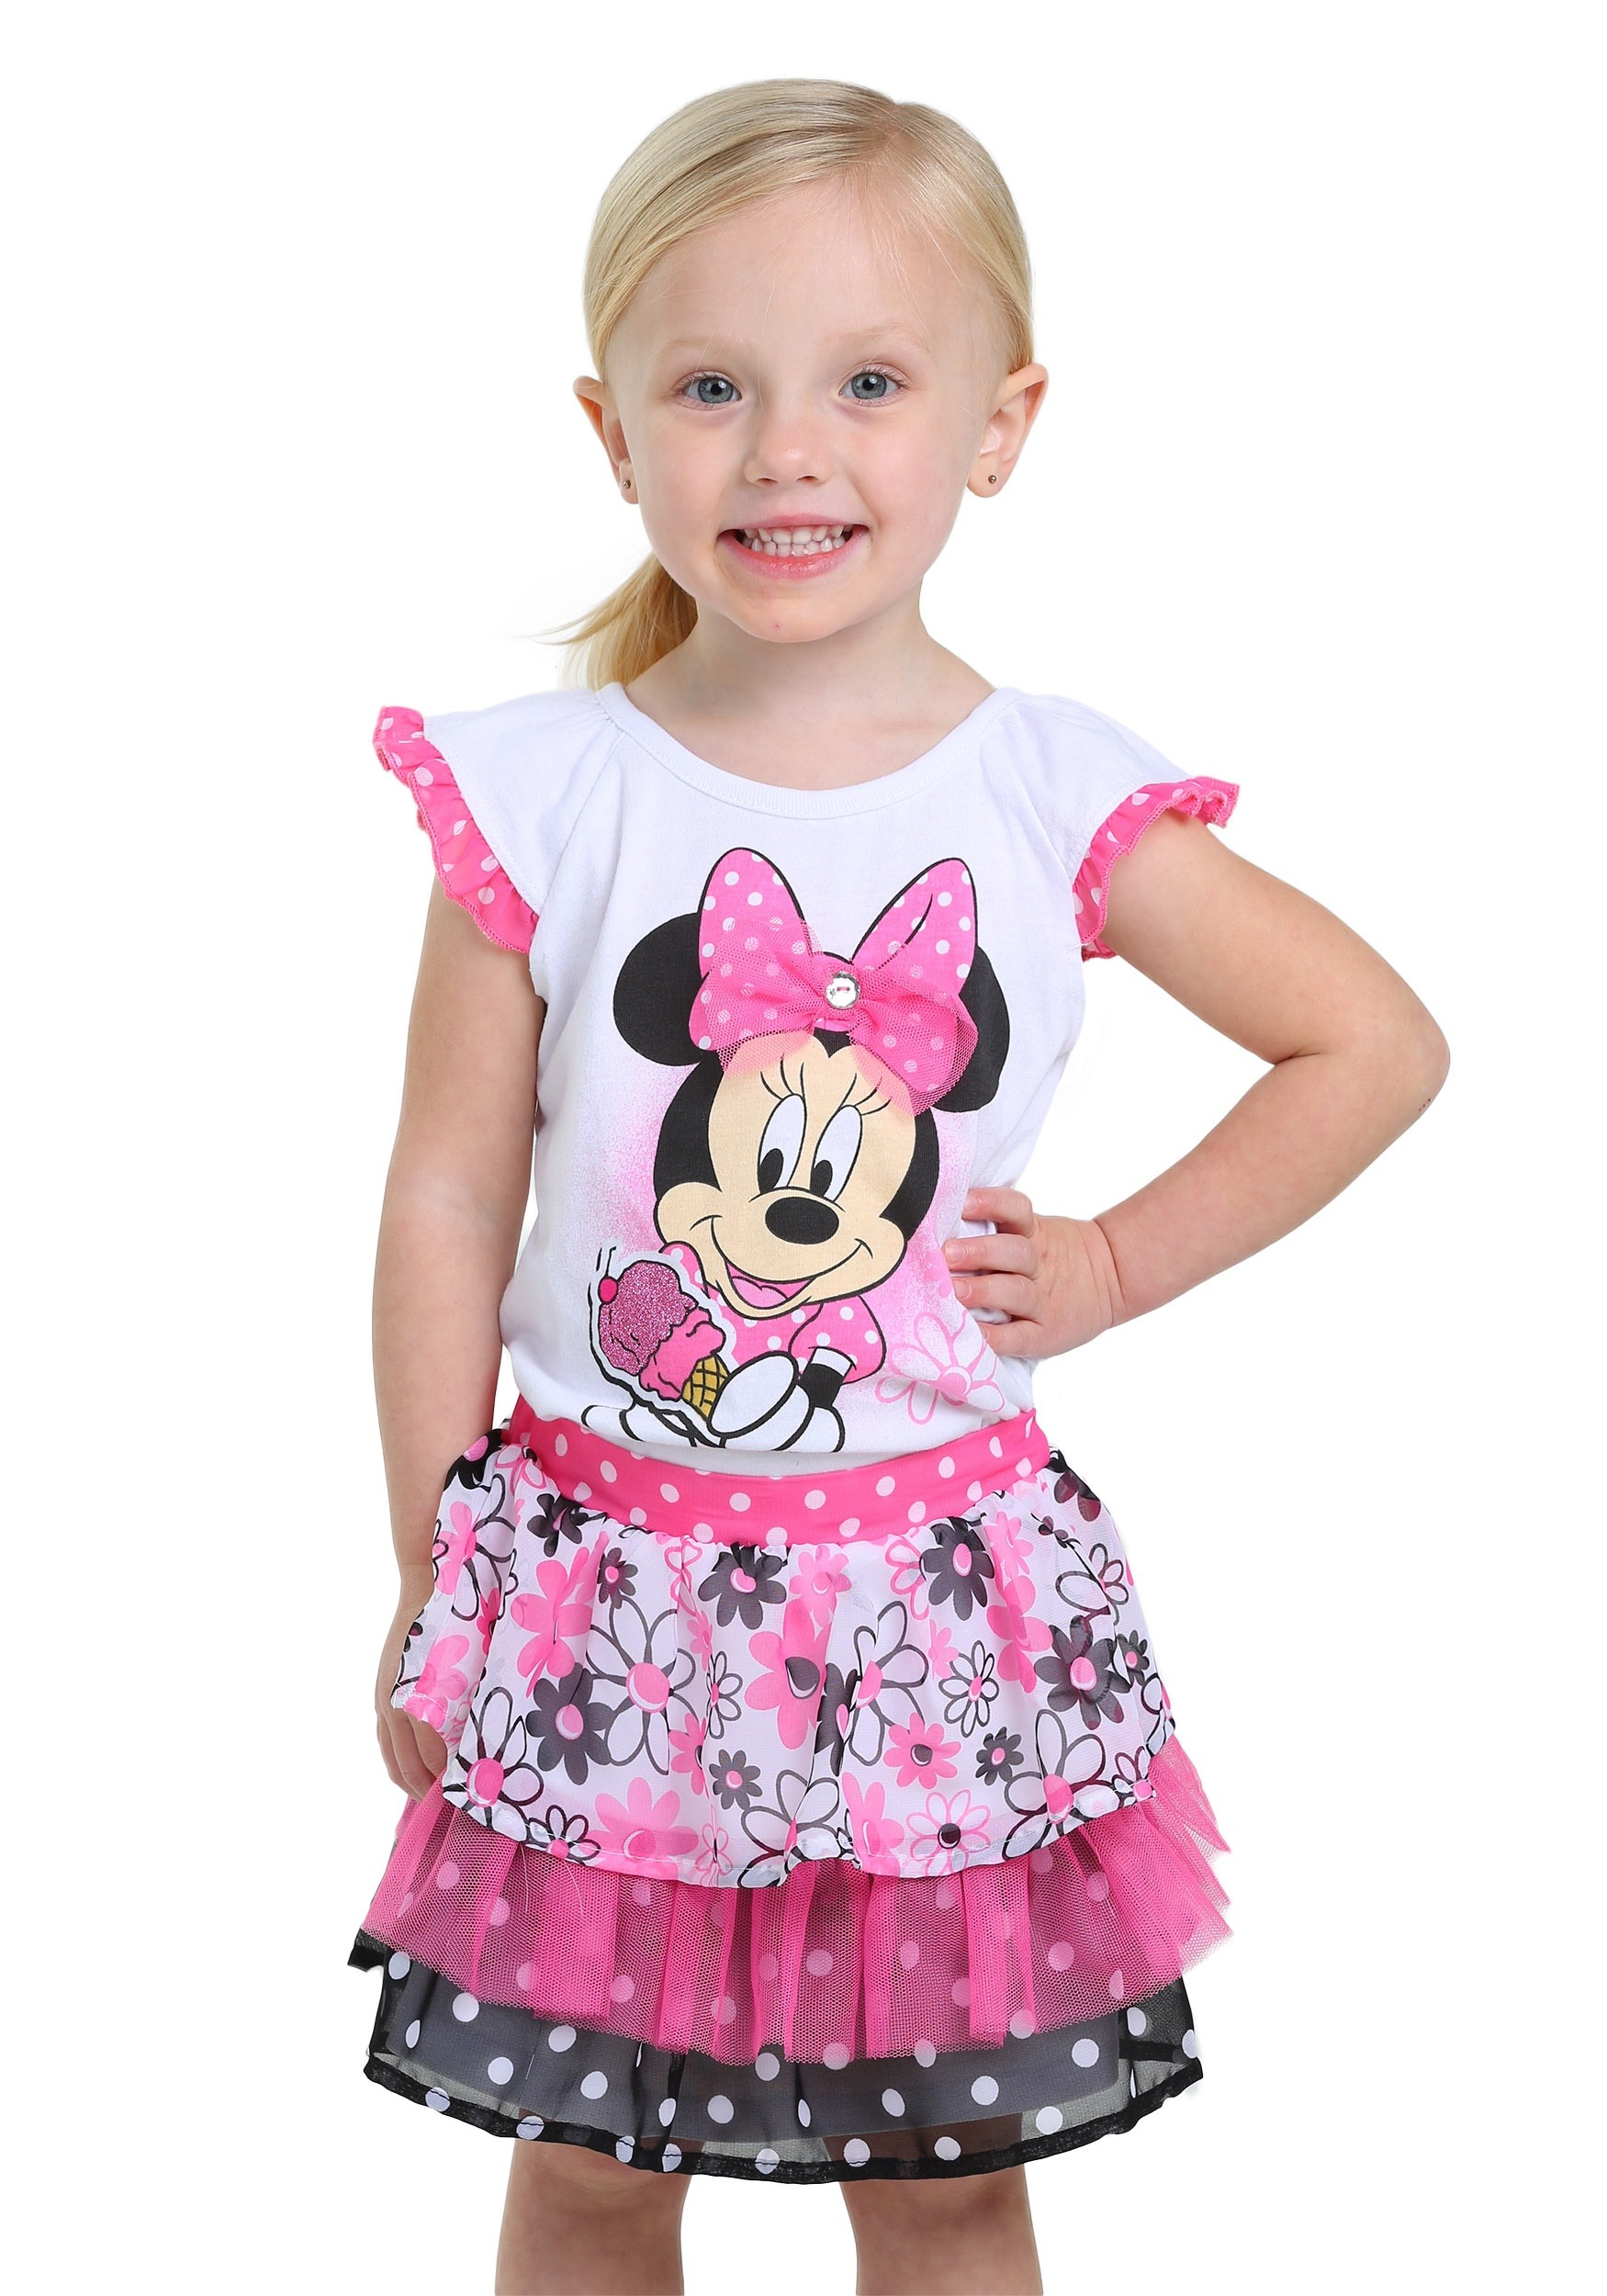 Find great deals on eBay for toddler minnie mouse clothing. Shop with confidence. Skip to main content. eBay: Dresses Toddler Girls Minnie Mouse Dress Girls clothes Gold dress Disney 2T-5T See more like this. Toddler Kids Baby Girls Minnie Mouse Outfits Clothes T .